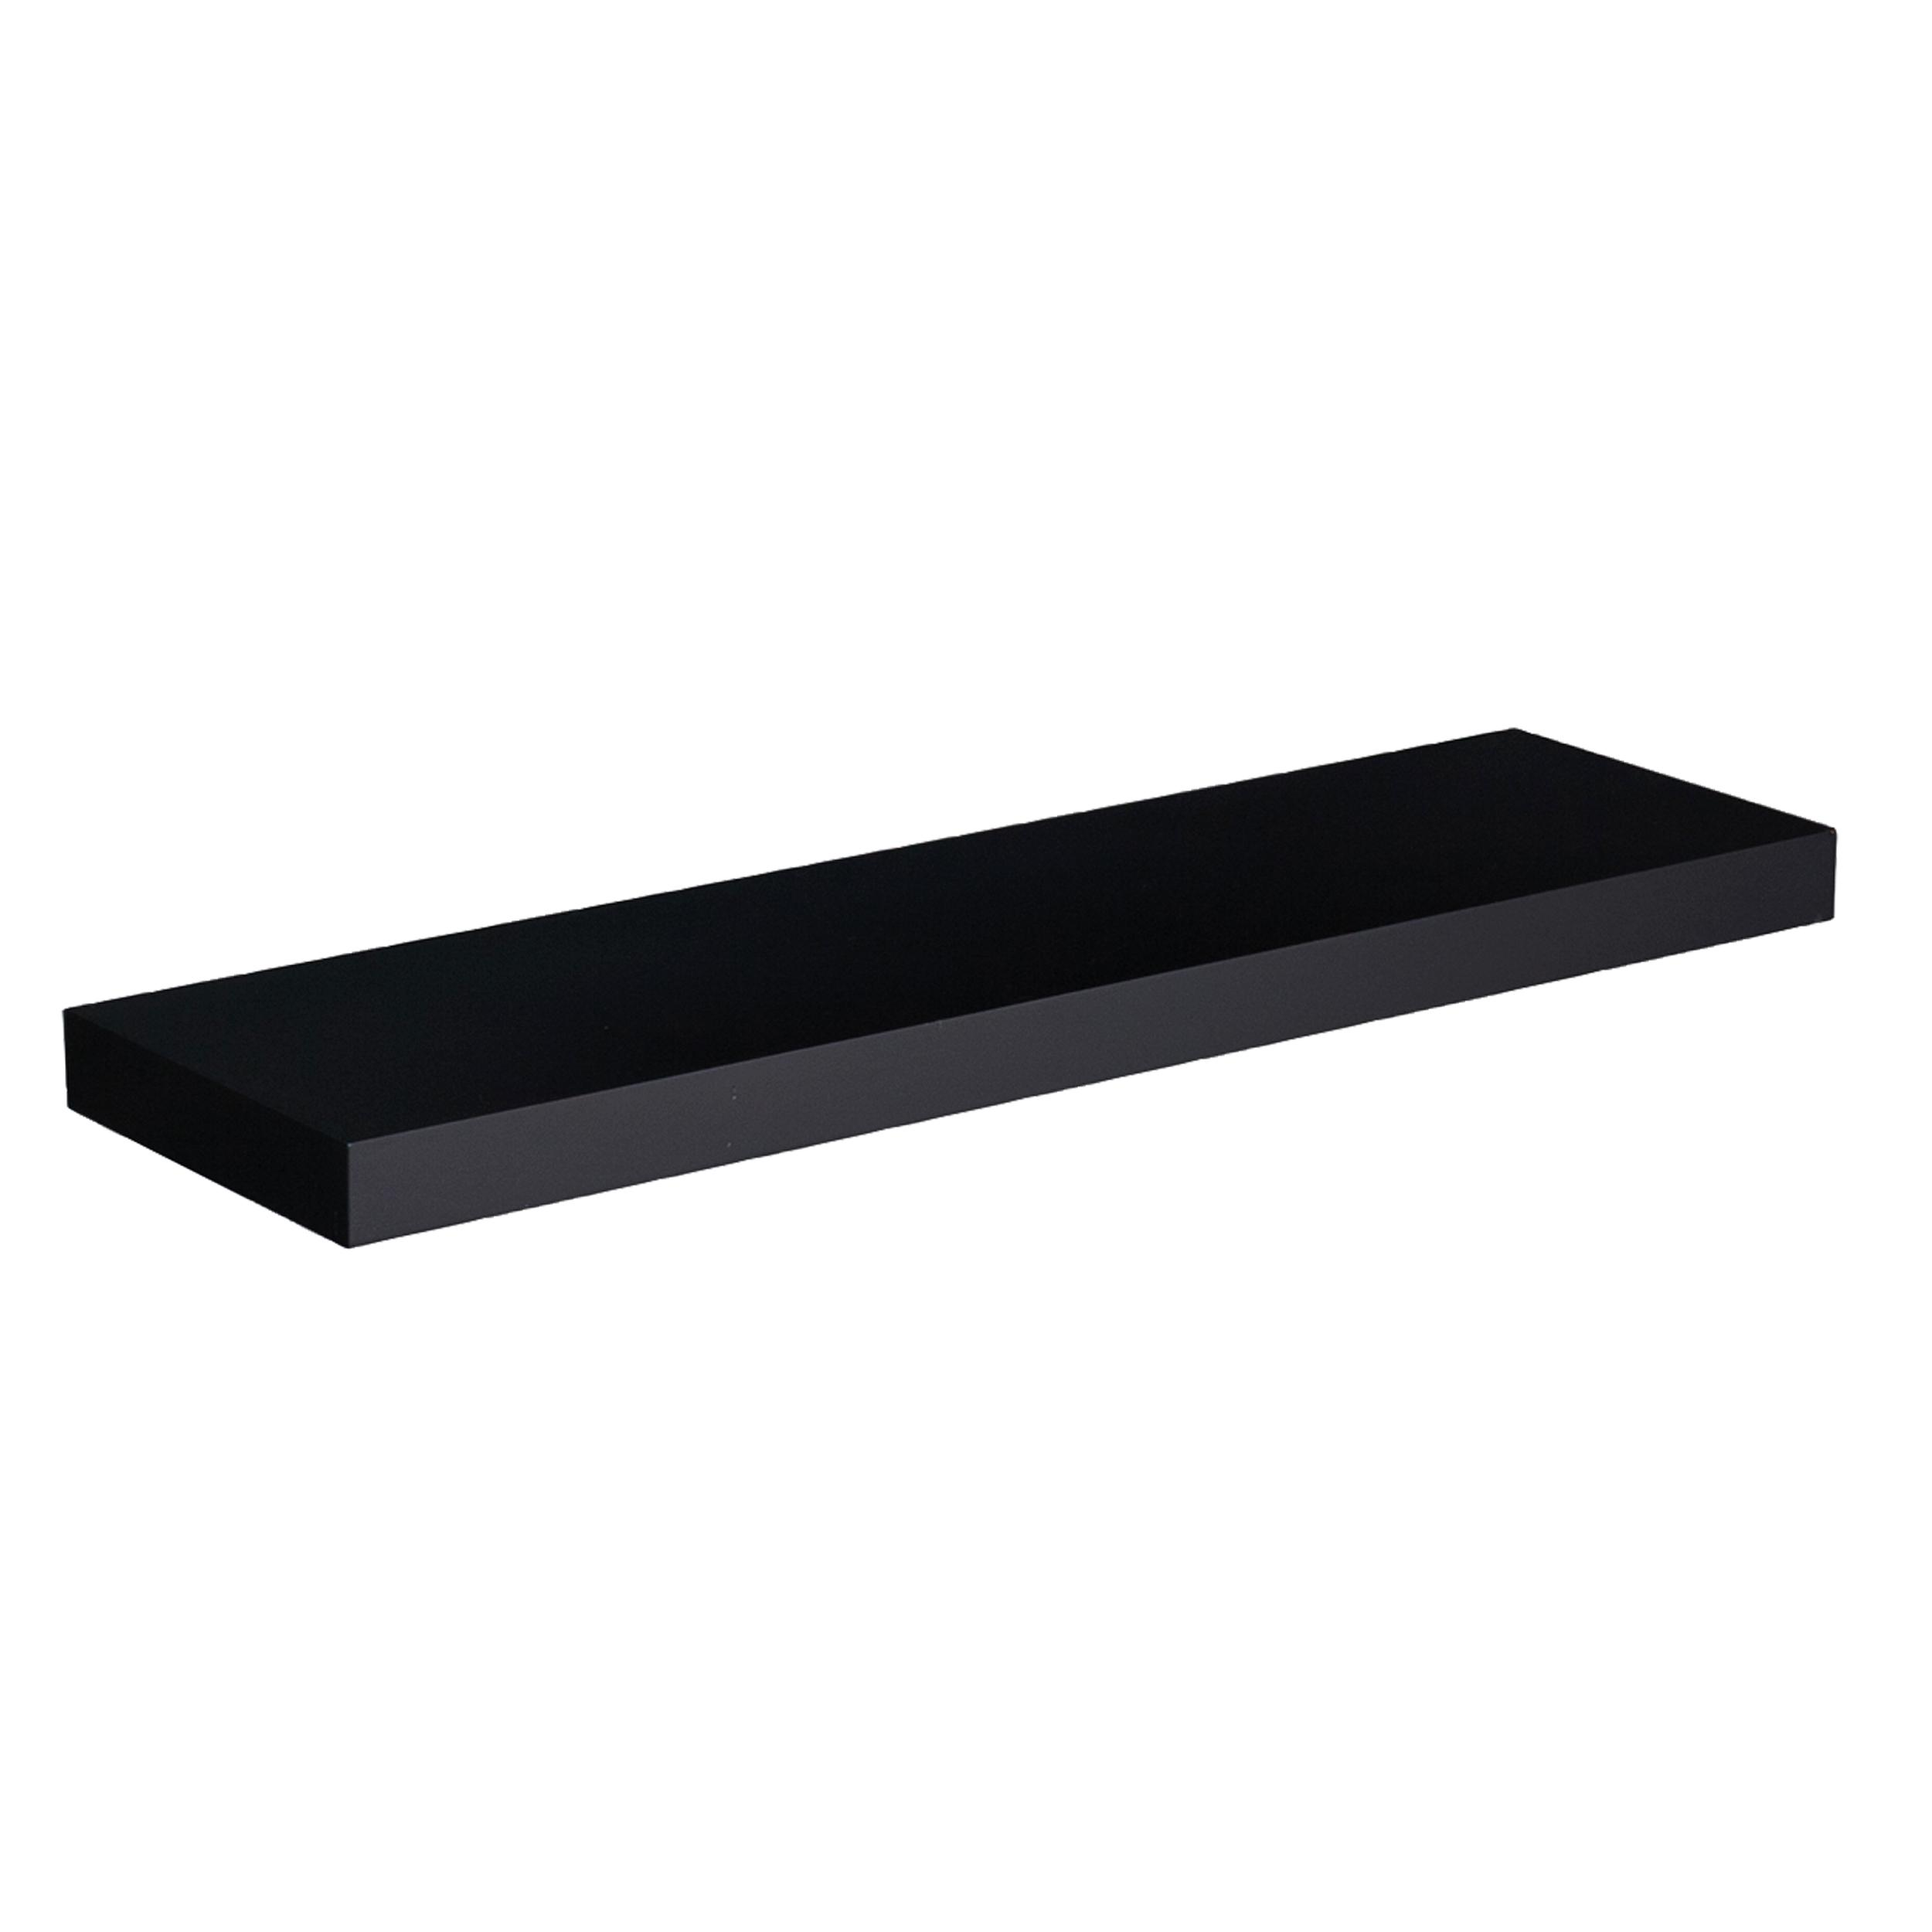 Southern Enterprises Chicago Floating Shelf, 36-Inch, Black